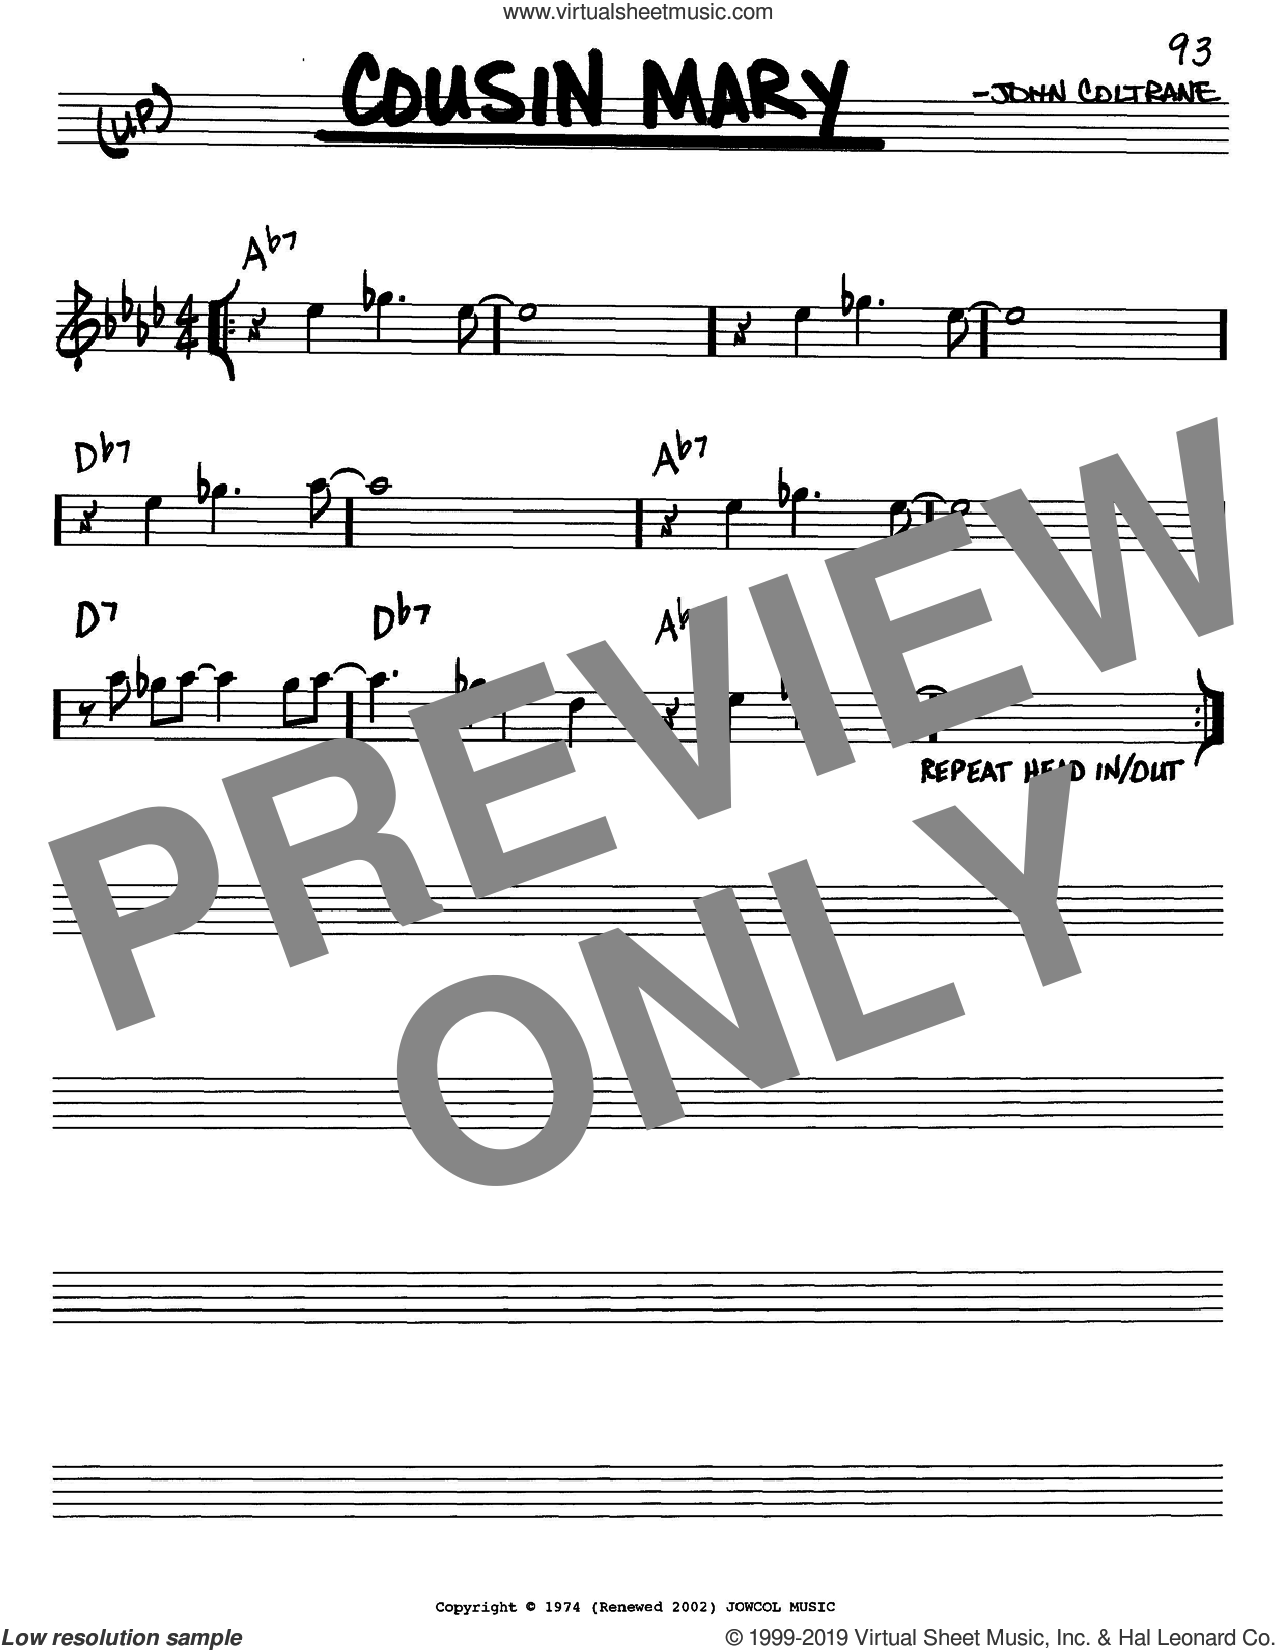 Cousin Mary sheet music for voice and other instruments (in C) by John Coltrane, intermediate skill level